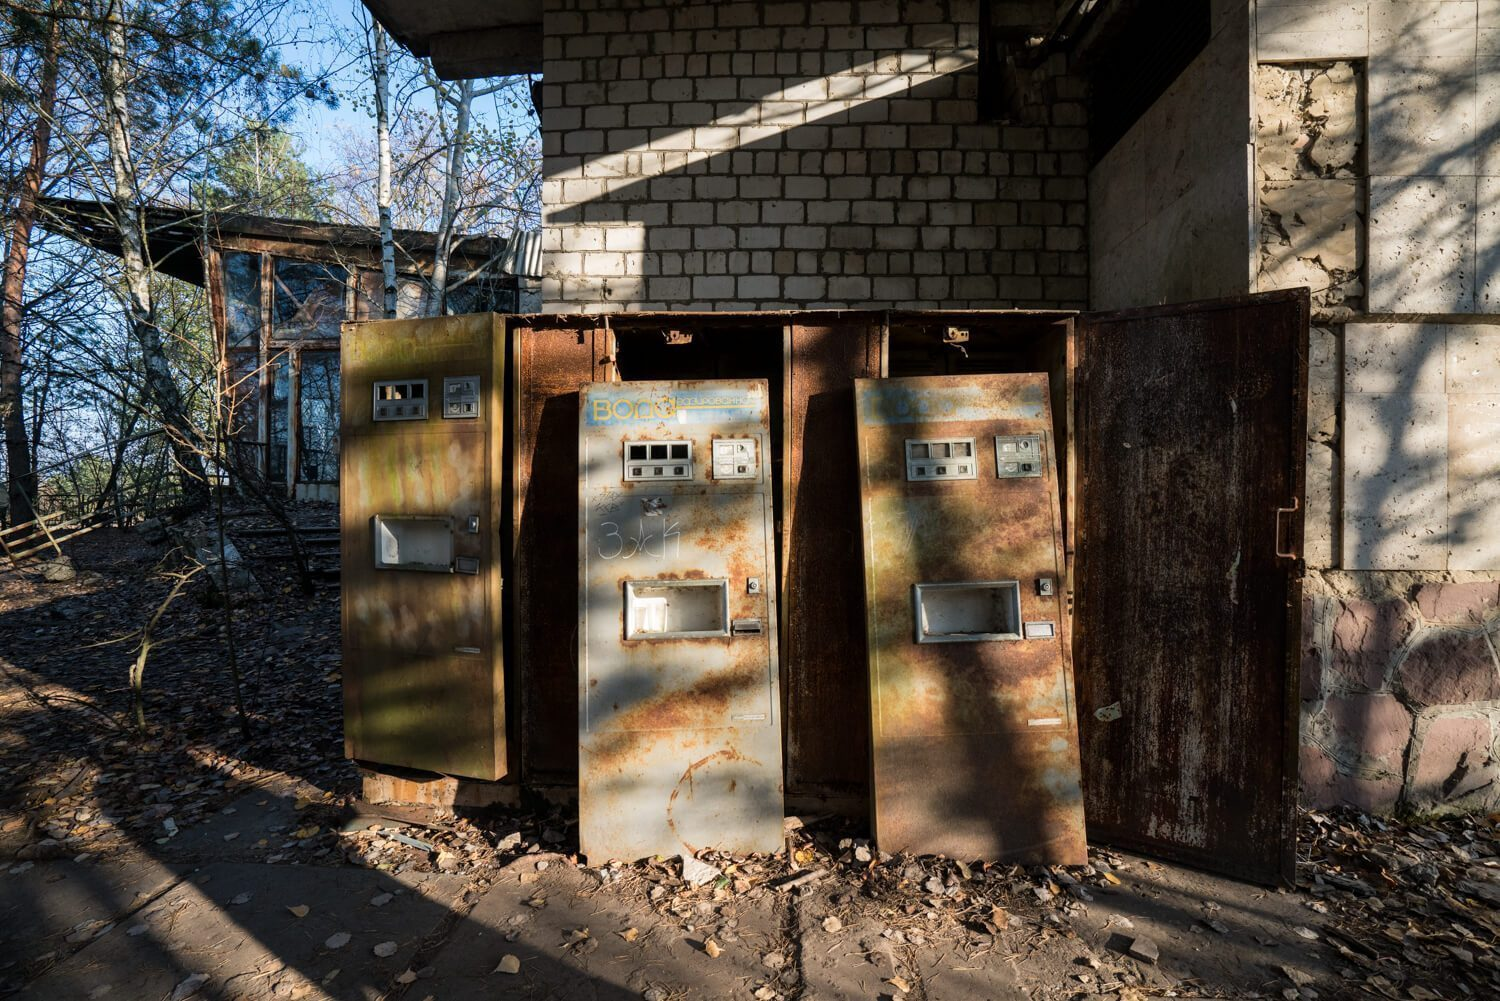 Soda machines at the cafe in Pripyat